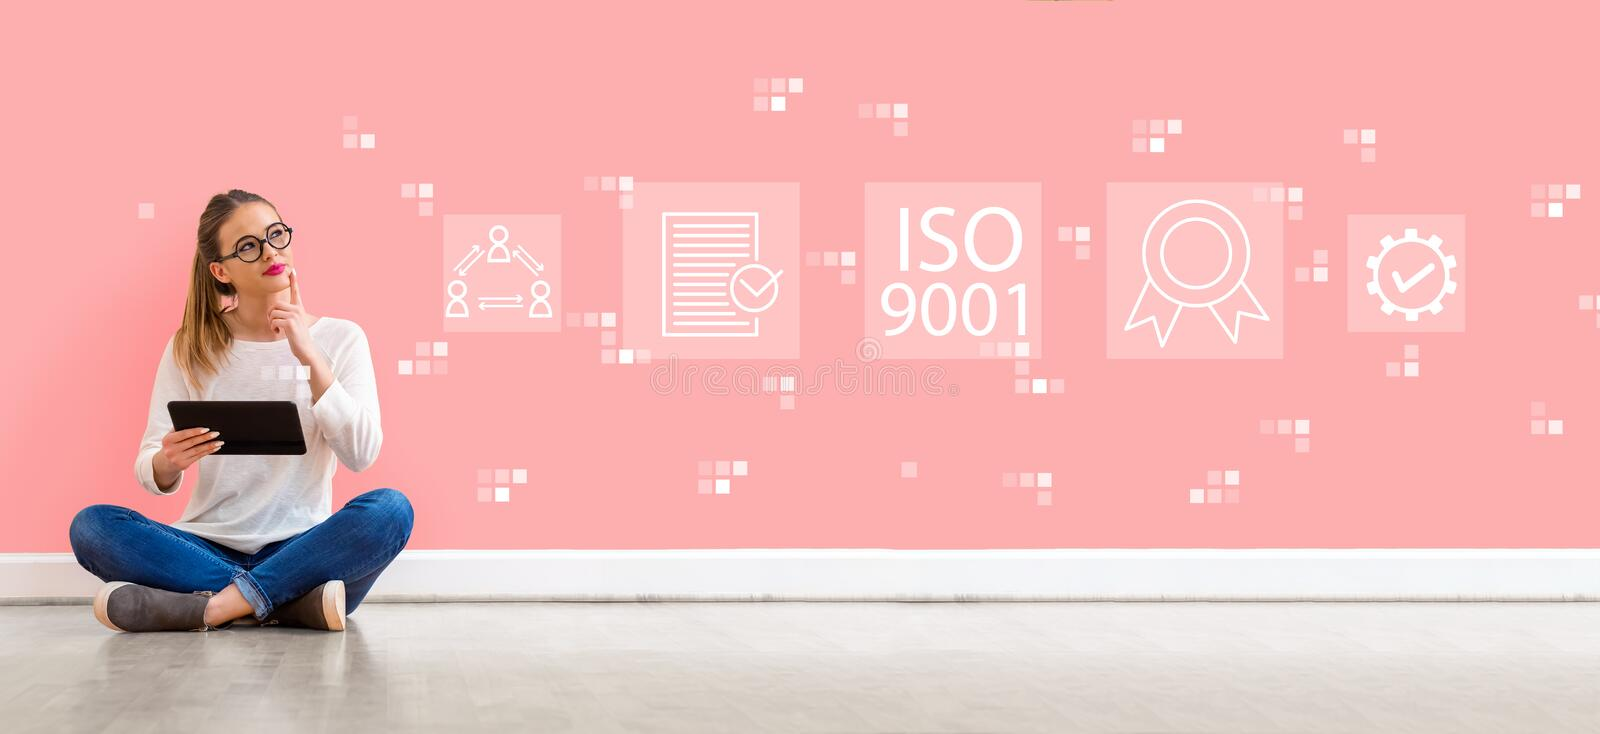 ISO 9001 with woman using a tablet royalty free stock image